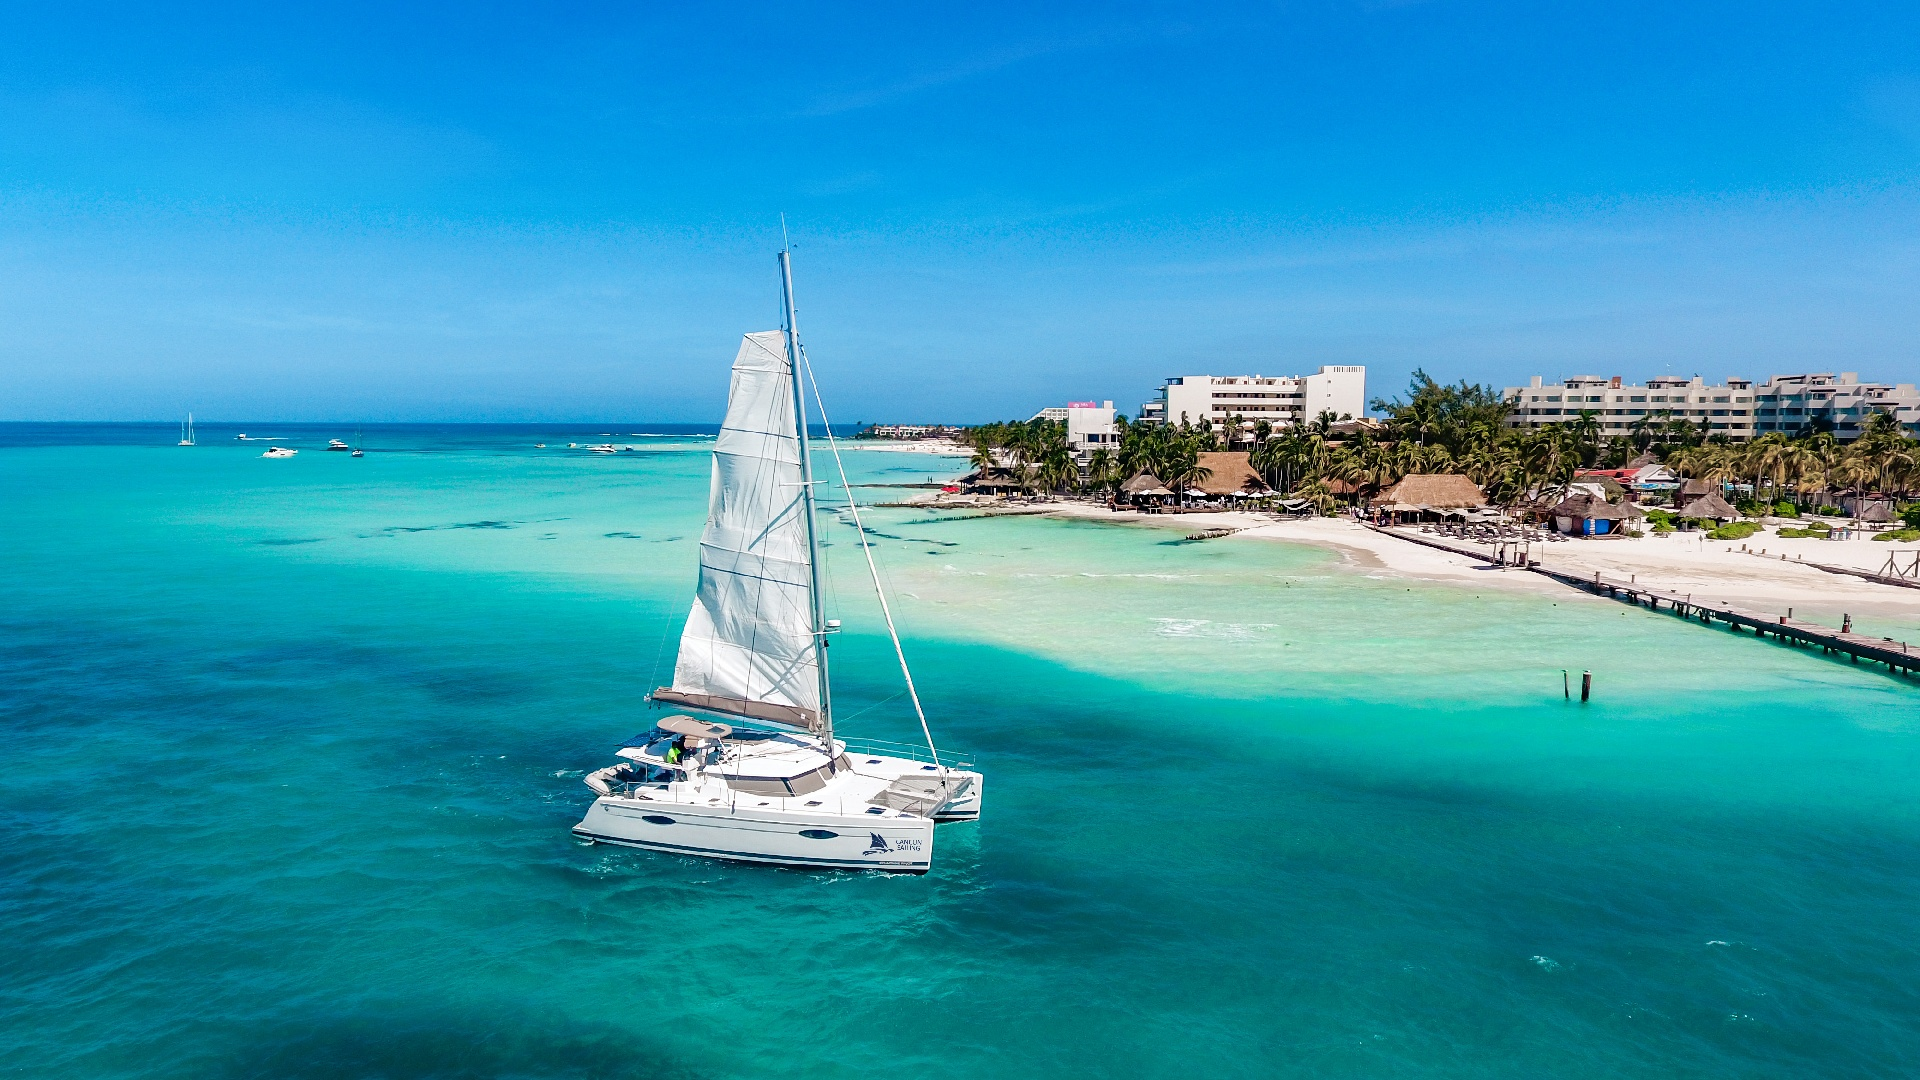 6 - LowRes - Gypse - Private tour to Isla Mujeres in catamaran - Cancun Sailing